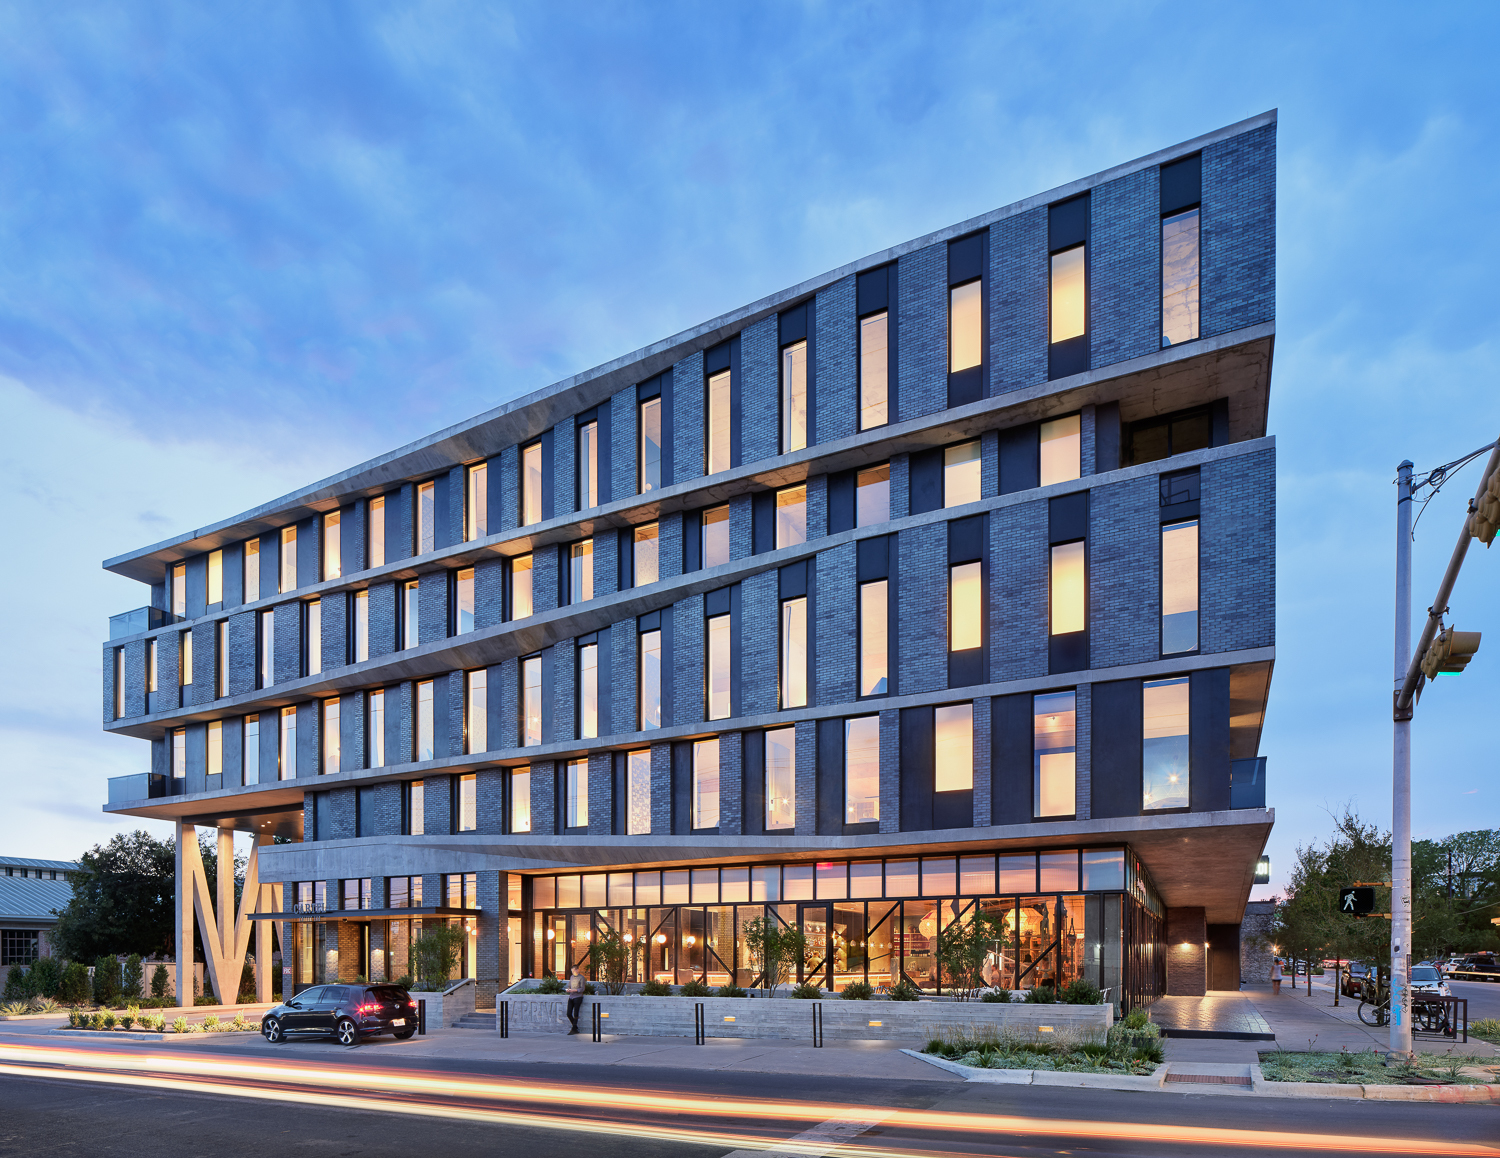 Endicott Clay Products Hospitality Design Arrive Hotel Exterior Face Brick Facade Duck Lighting